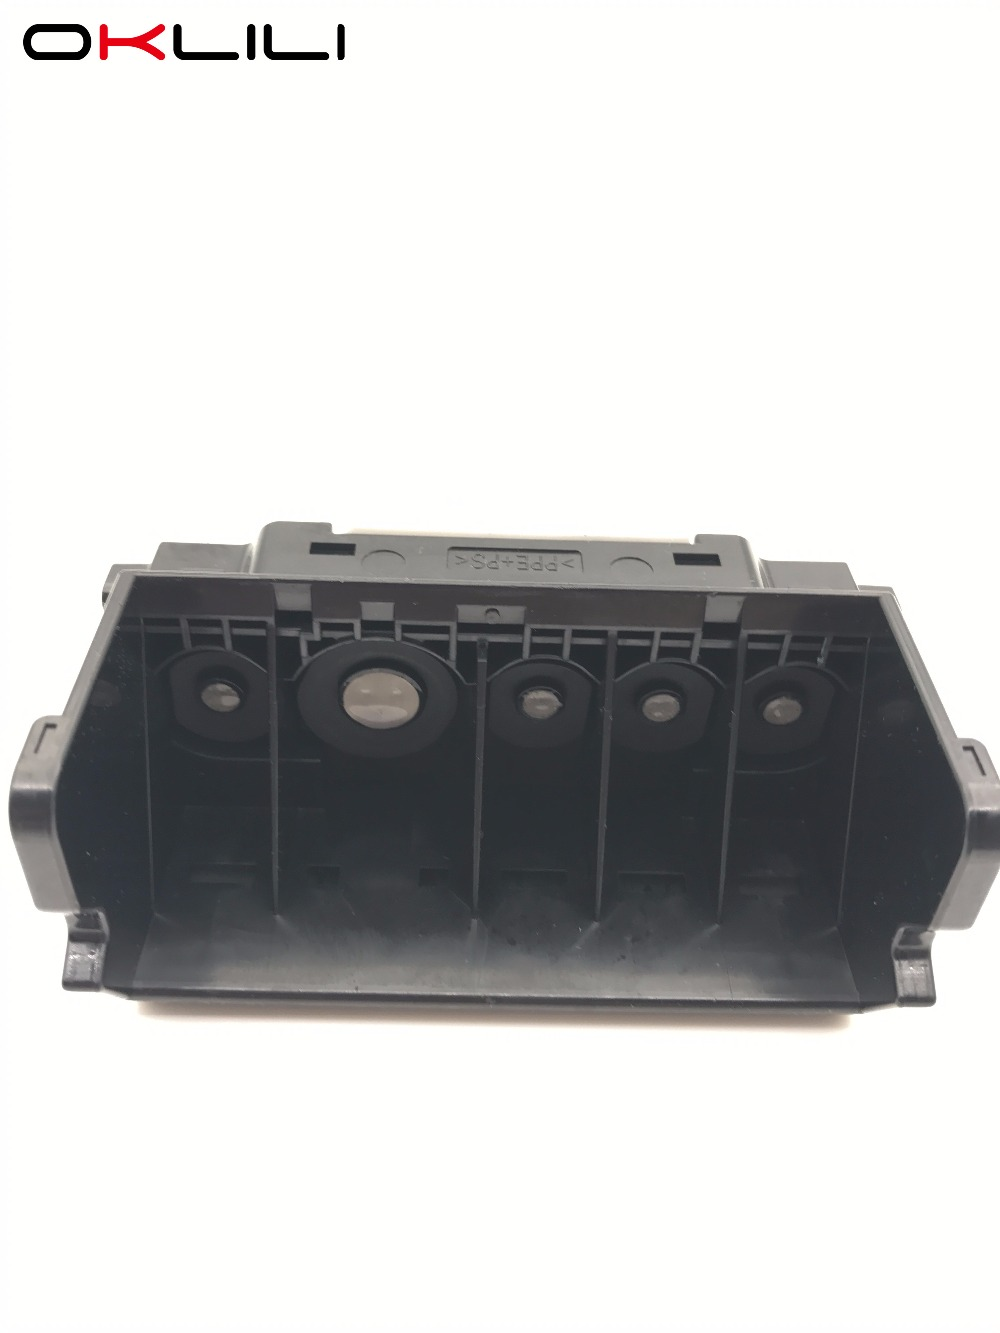 <font><b>QY6</b></font>-<font><b>0080</b></font> Printhead Print Head Printer Head for Canon iP4820 iP4840 iP4850 iX6520 iX6550 MX715 MX885 MG5220 MG5250 MG5320 MG5350 image